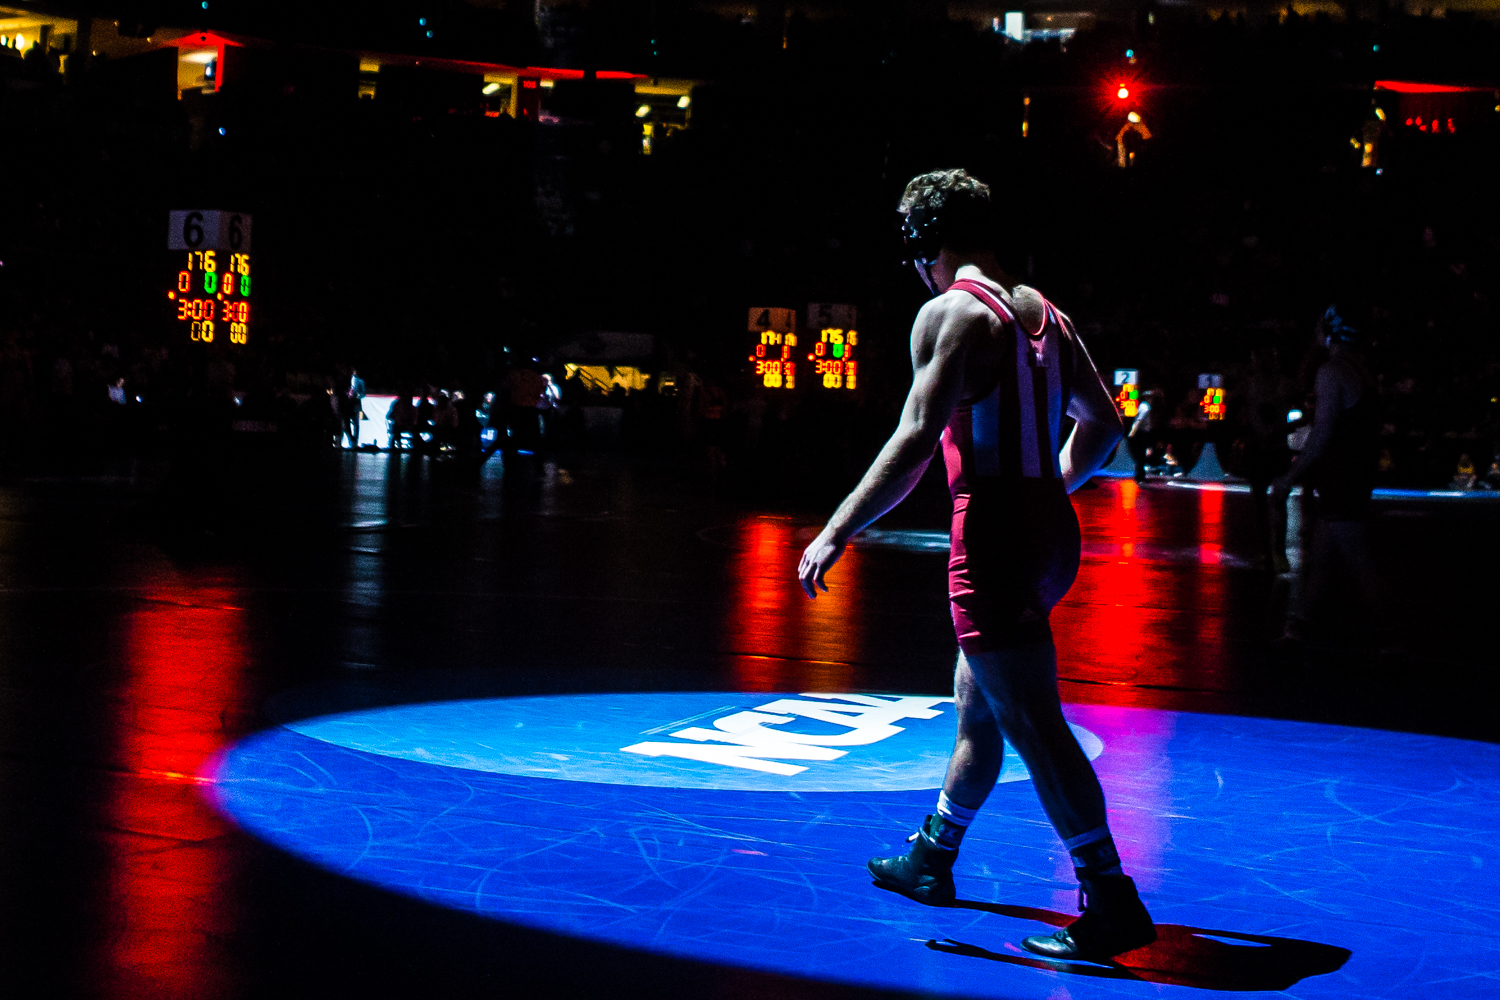 Wrestlers+are+introduced+before+the+second+session+of+the+2019+NCAA+D1+Wrestling+Championships+at+PPG+Paints+Arena+in+Pittsburgh%2C+PA+on+Thursday%2C+March+21%2C+2019.